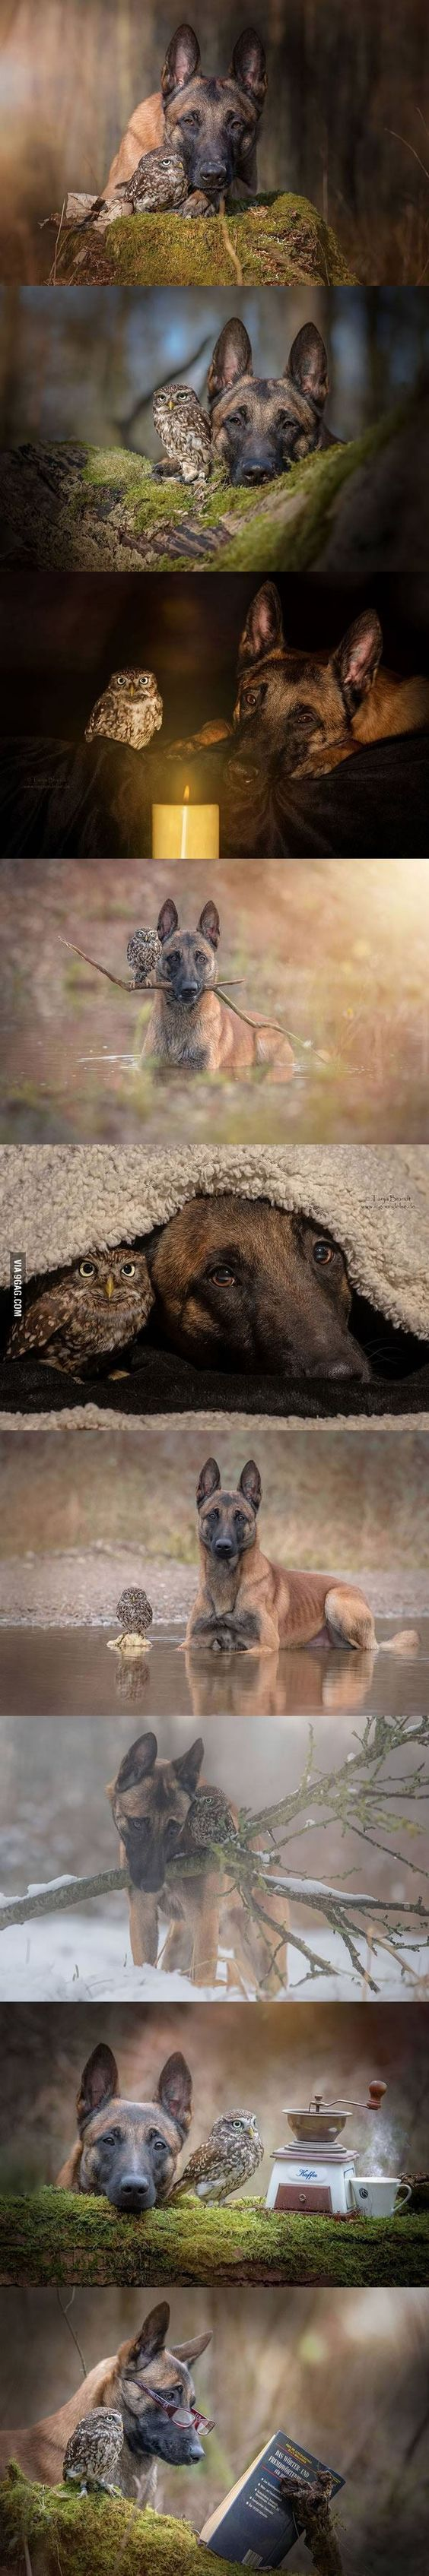 a belgian malinois and an owl formed an unlikely friendship ..awww my heart is melting...